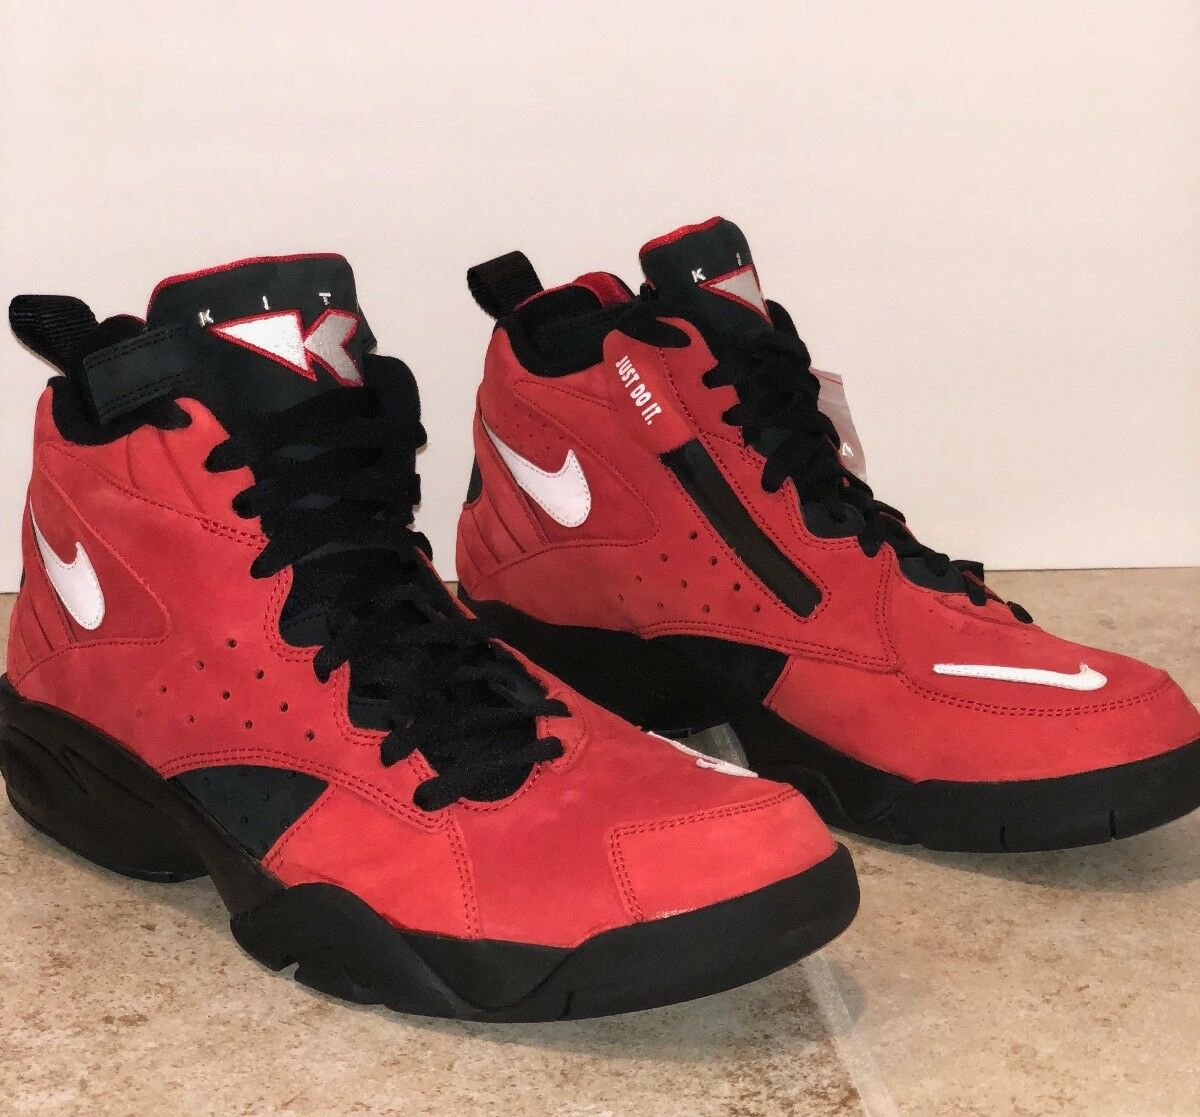 Kith x Nike Air Maestro II High Red Black Take Flight Comfortable best-selling model of the brand